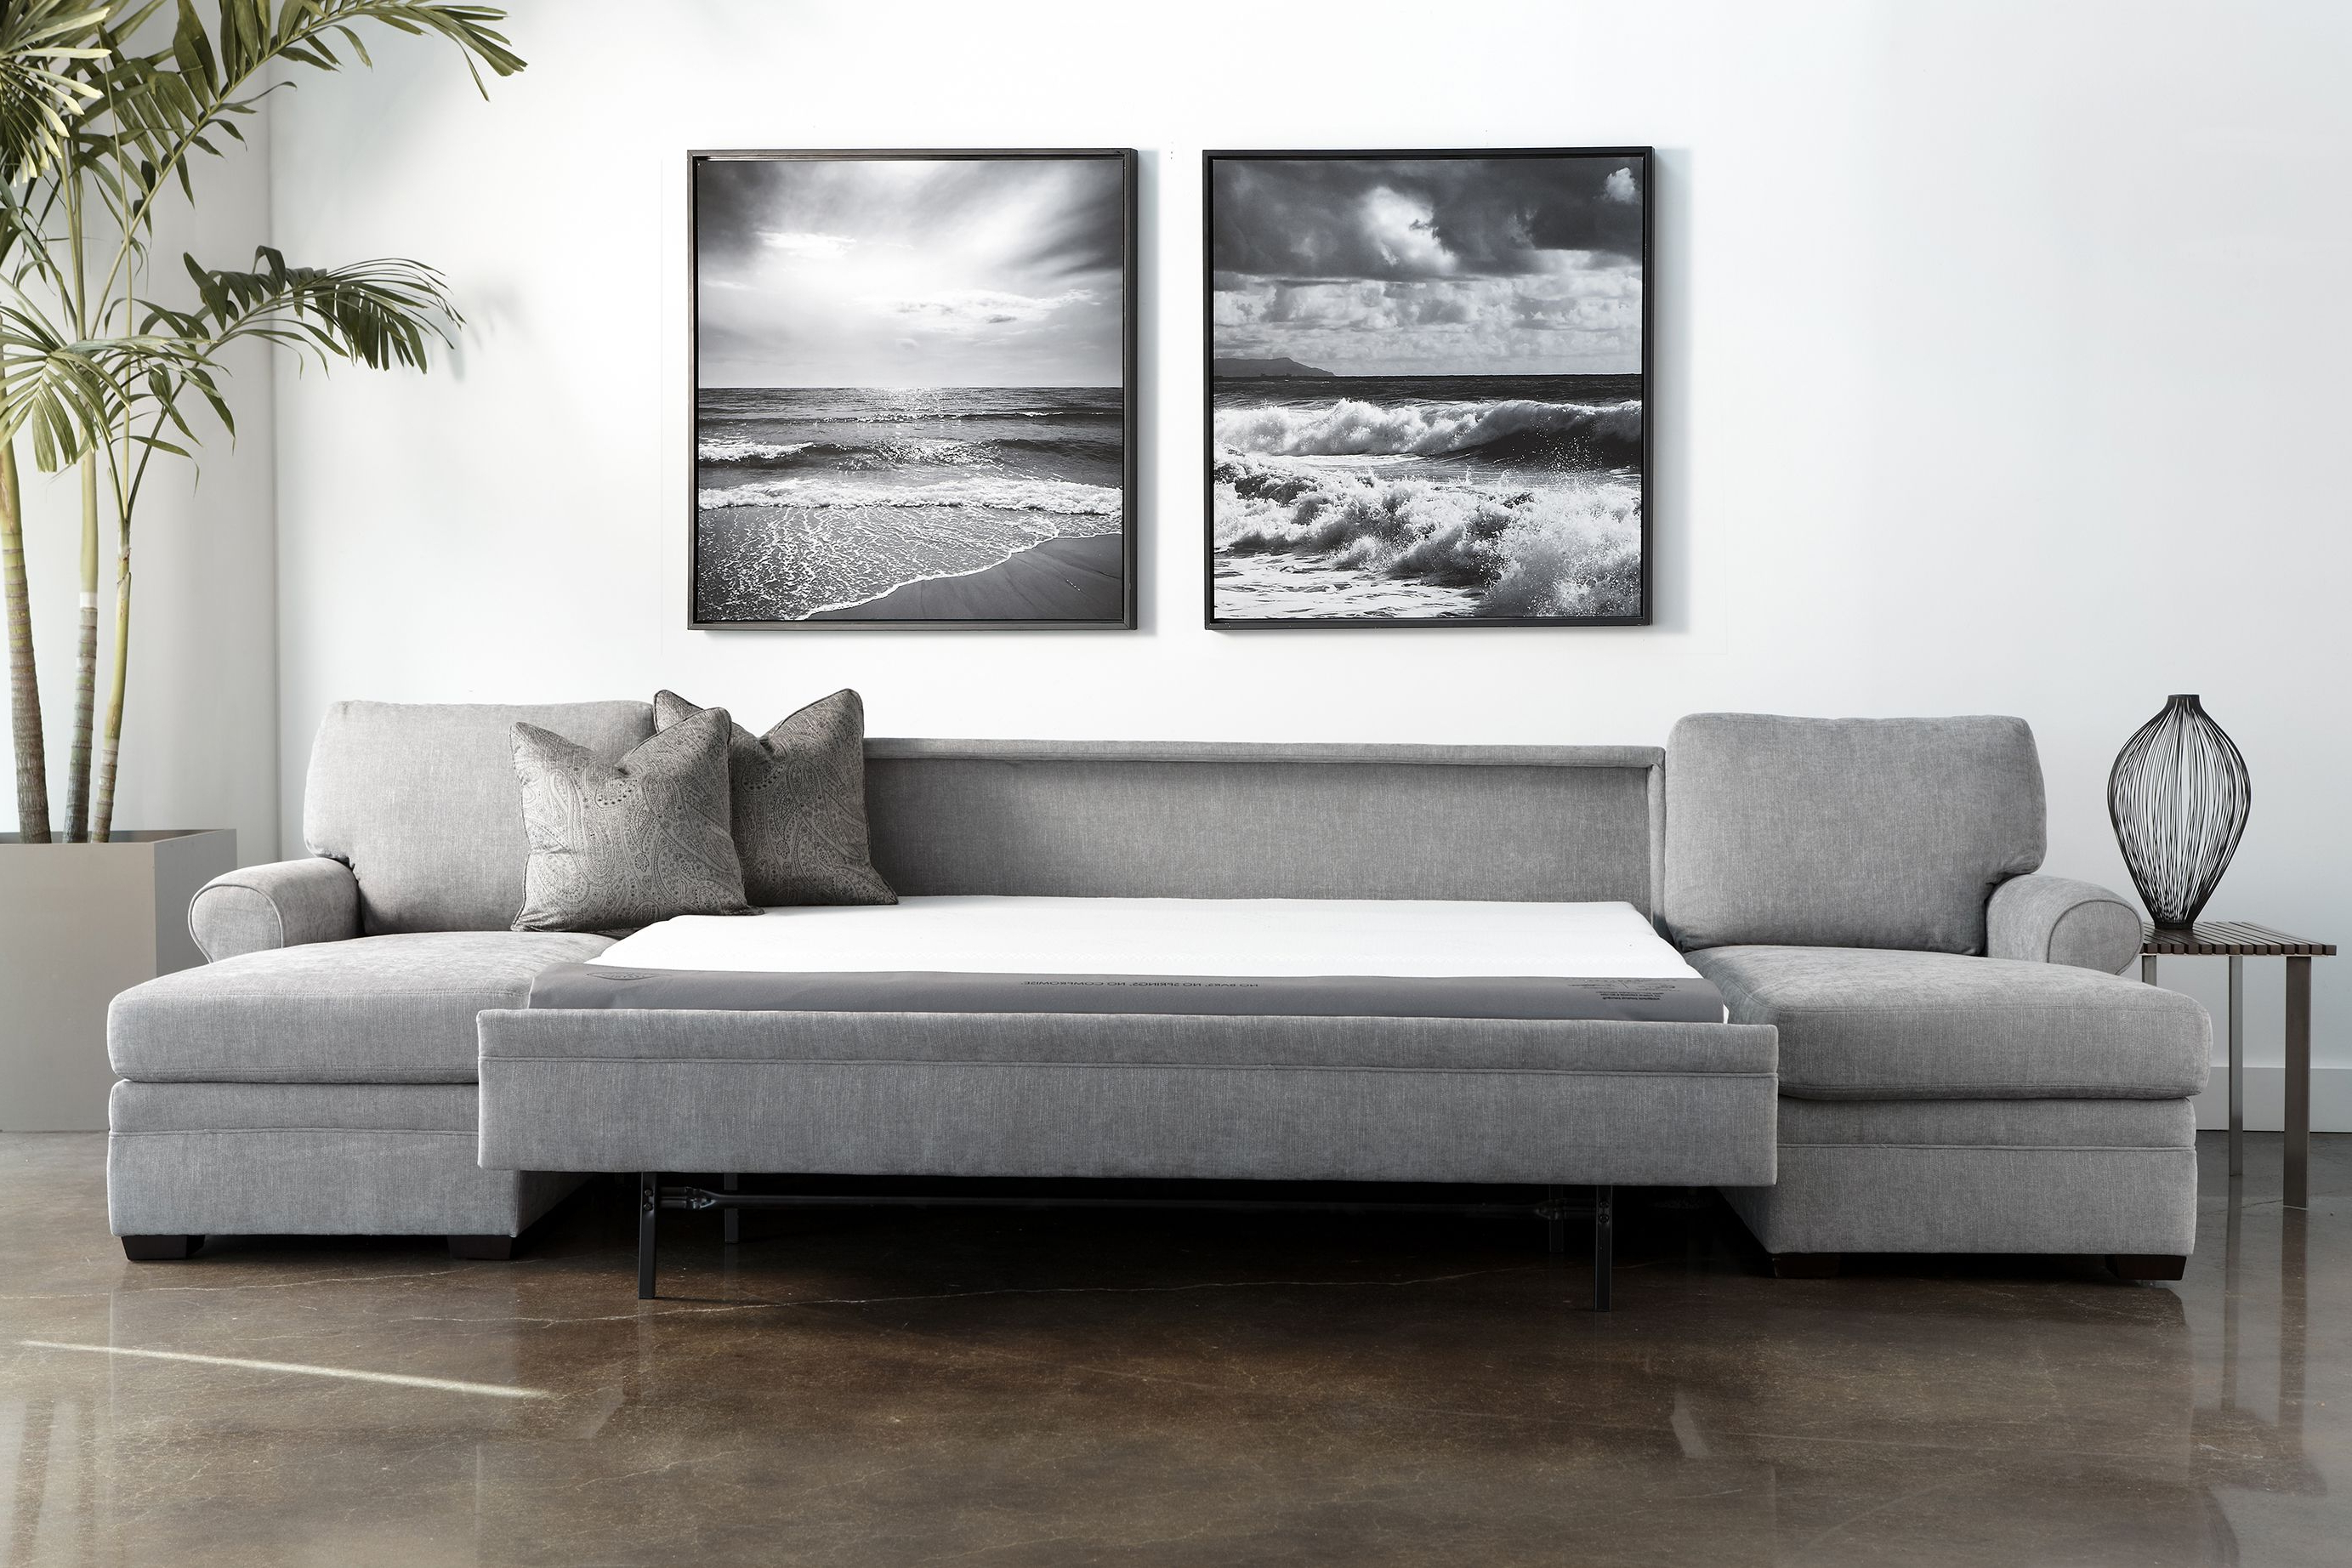 Most Current Pinbedrooms & More On American Leather Comfort Sleeper Sofas For Gina Grey Leather Sofa Chairs (View 10 of 20)